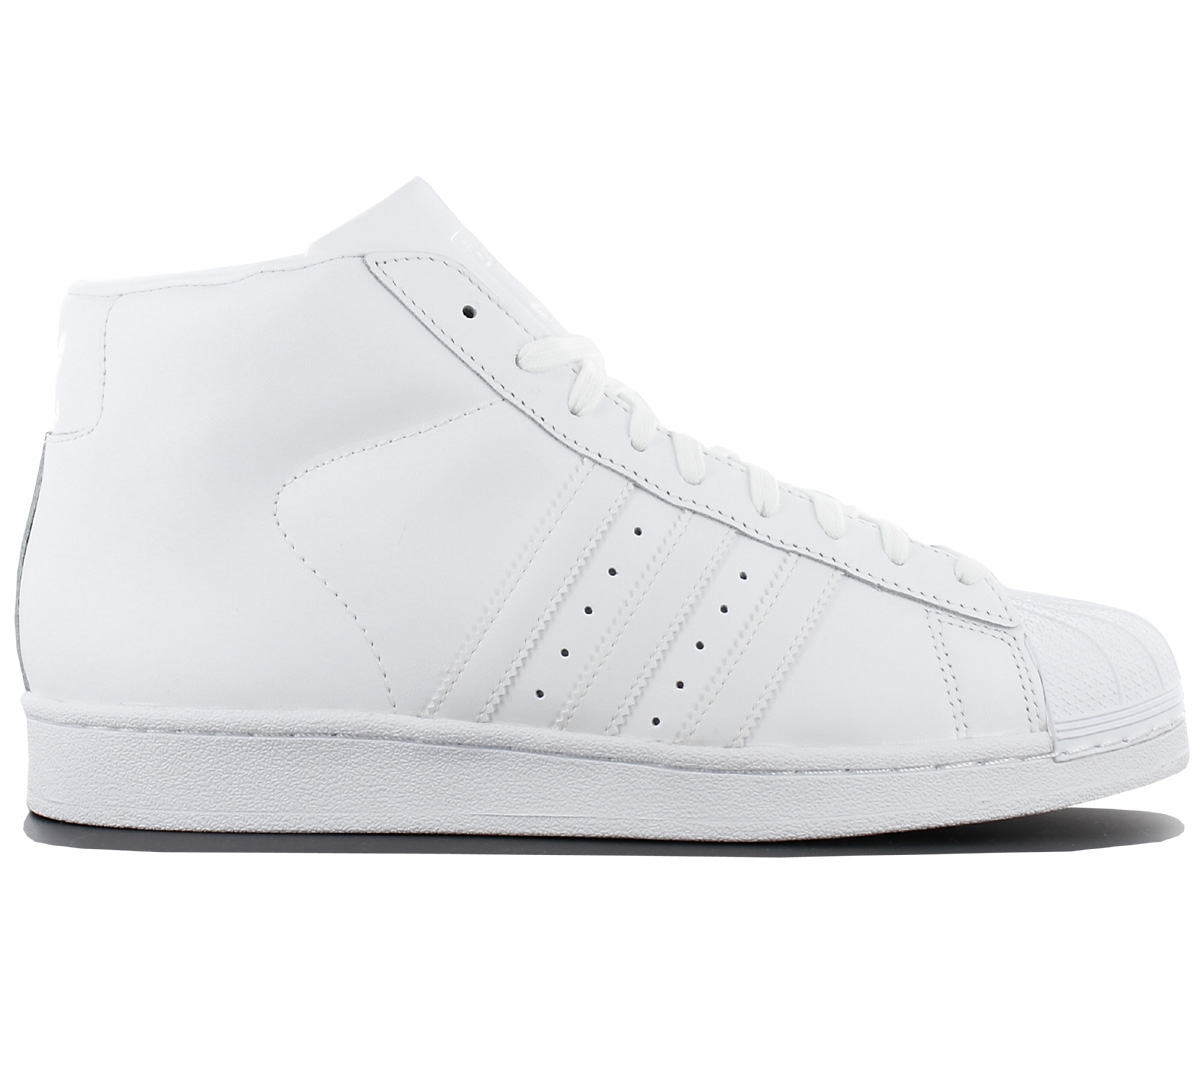 low priced d7cf8 22a18 Details about Adidas Superstar pro Model Men's Sneaker Leather White mid  Shoe Sneaker AQ5217